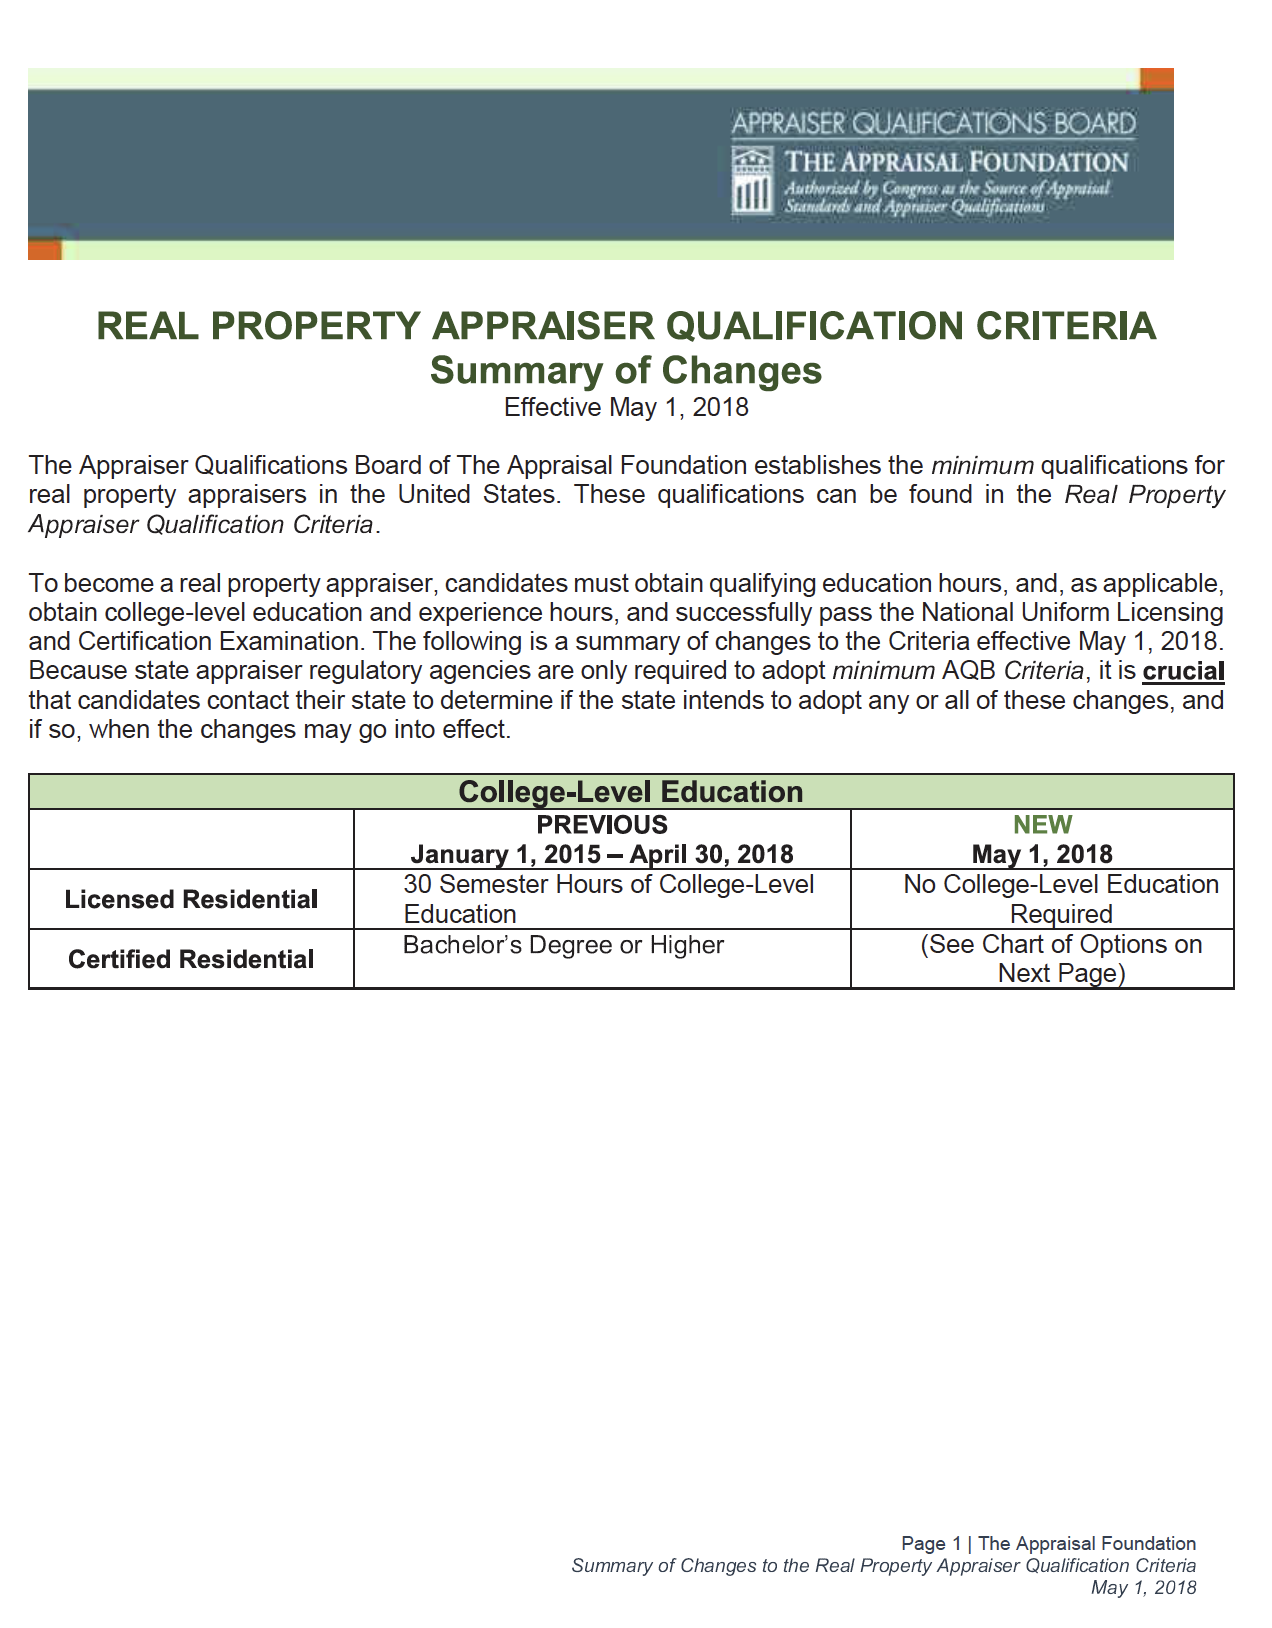 REIC: Policies & Culture of the Appraisal Industry - Real